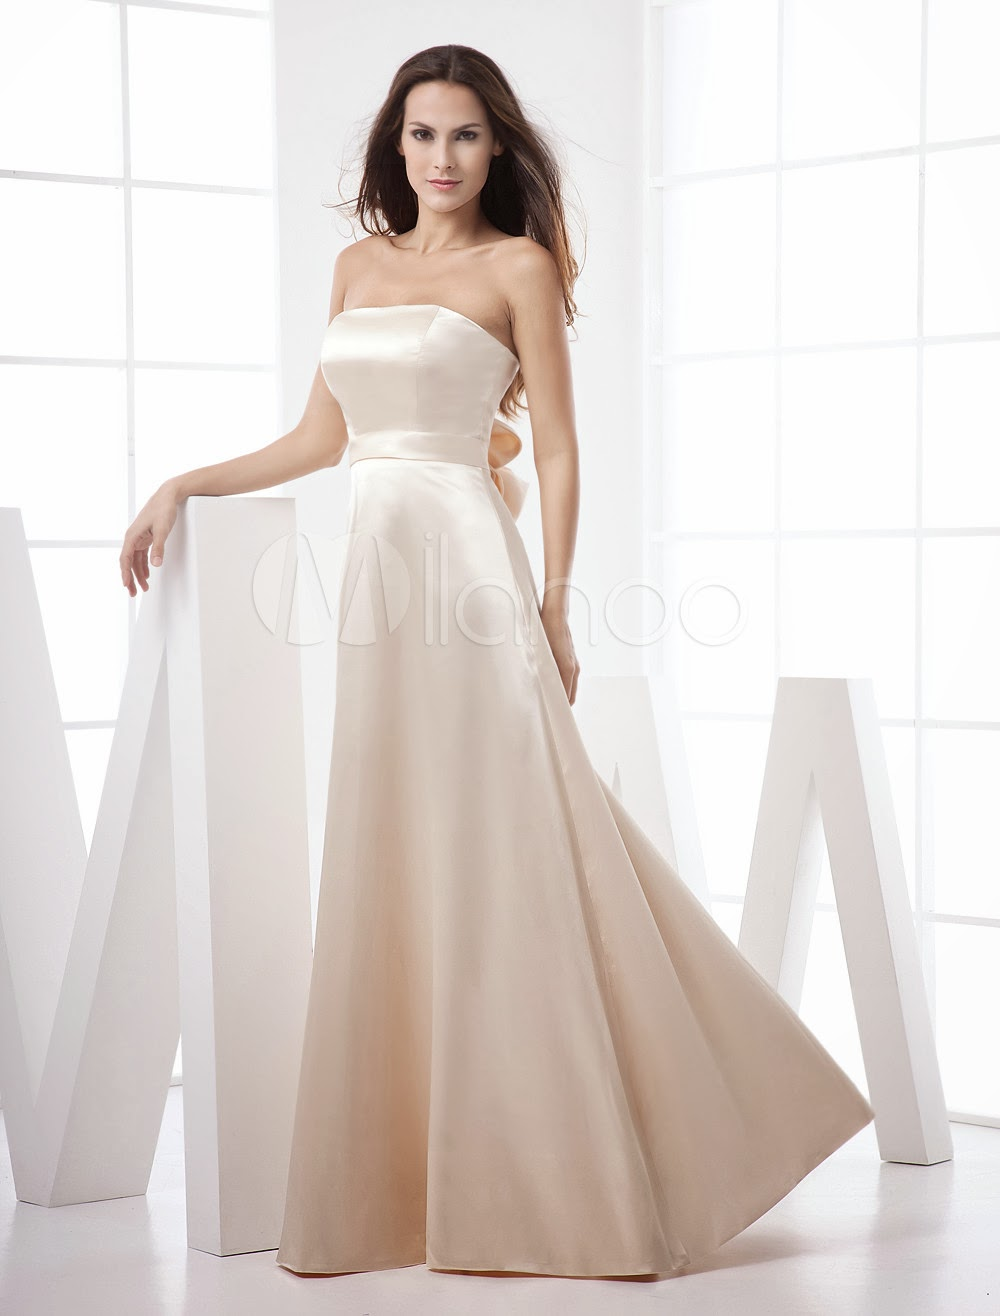 China Wholesale Dresses - Champagne Strapless Floor Length A-line Elastic Woven Satin Evening Dresses